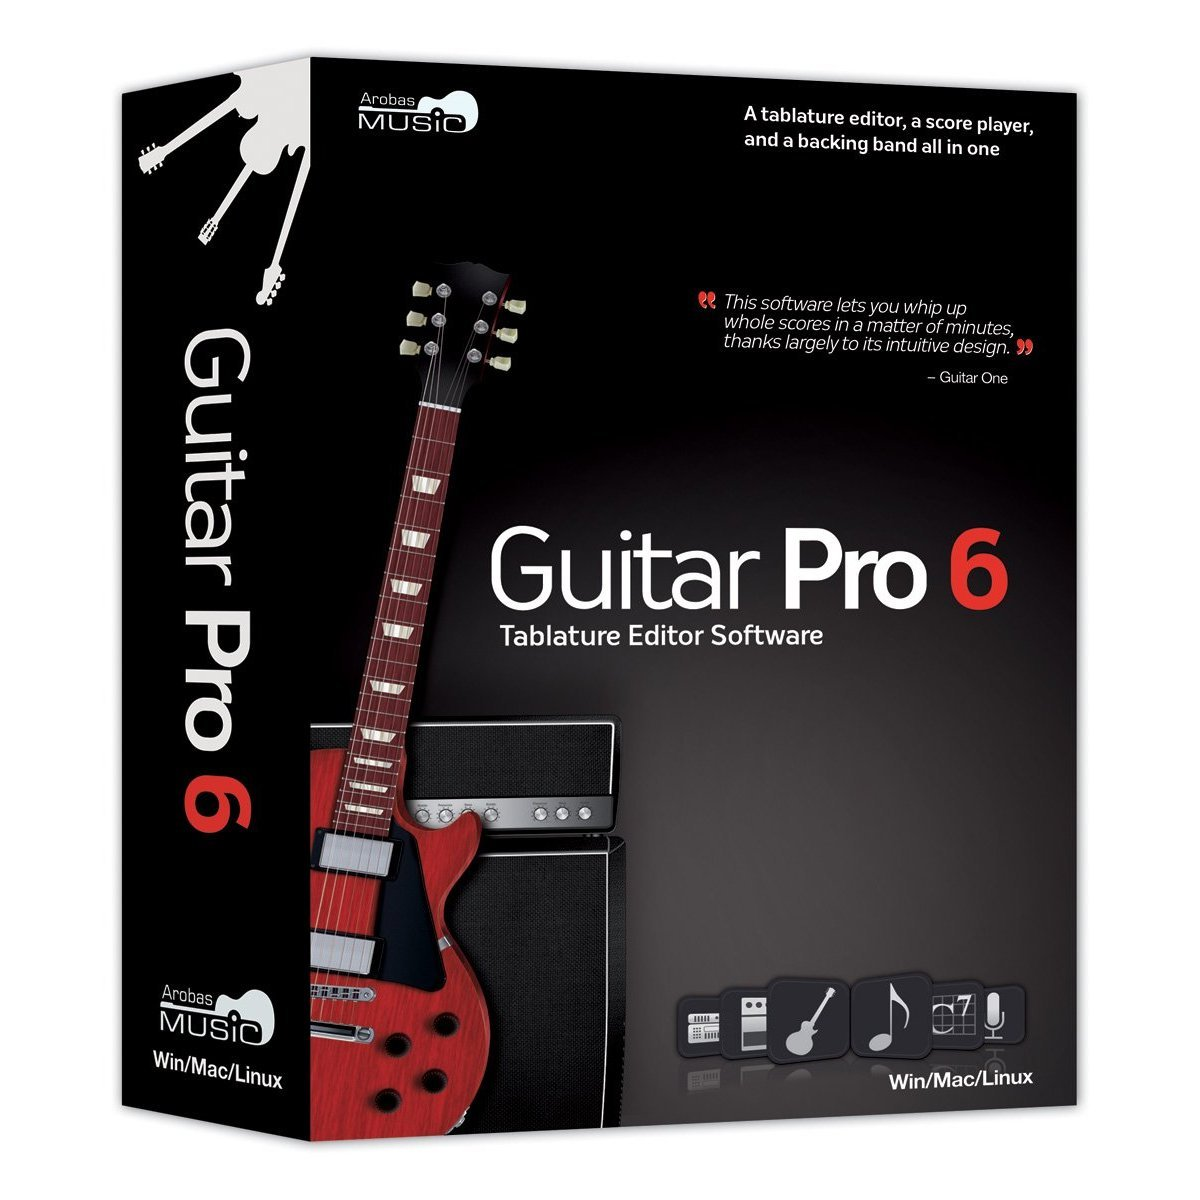 guitar pro 6.0.9 r9934 final 2011/ml/rus soundbanks crack кряк крек серийник serial keygen portable